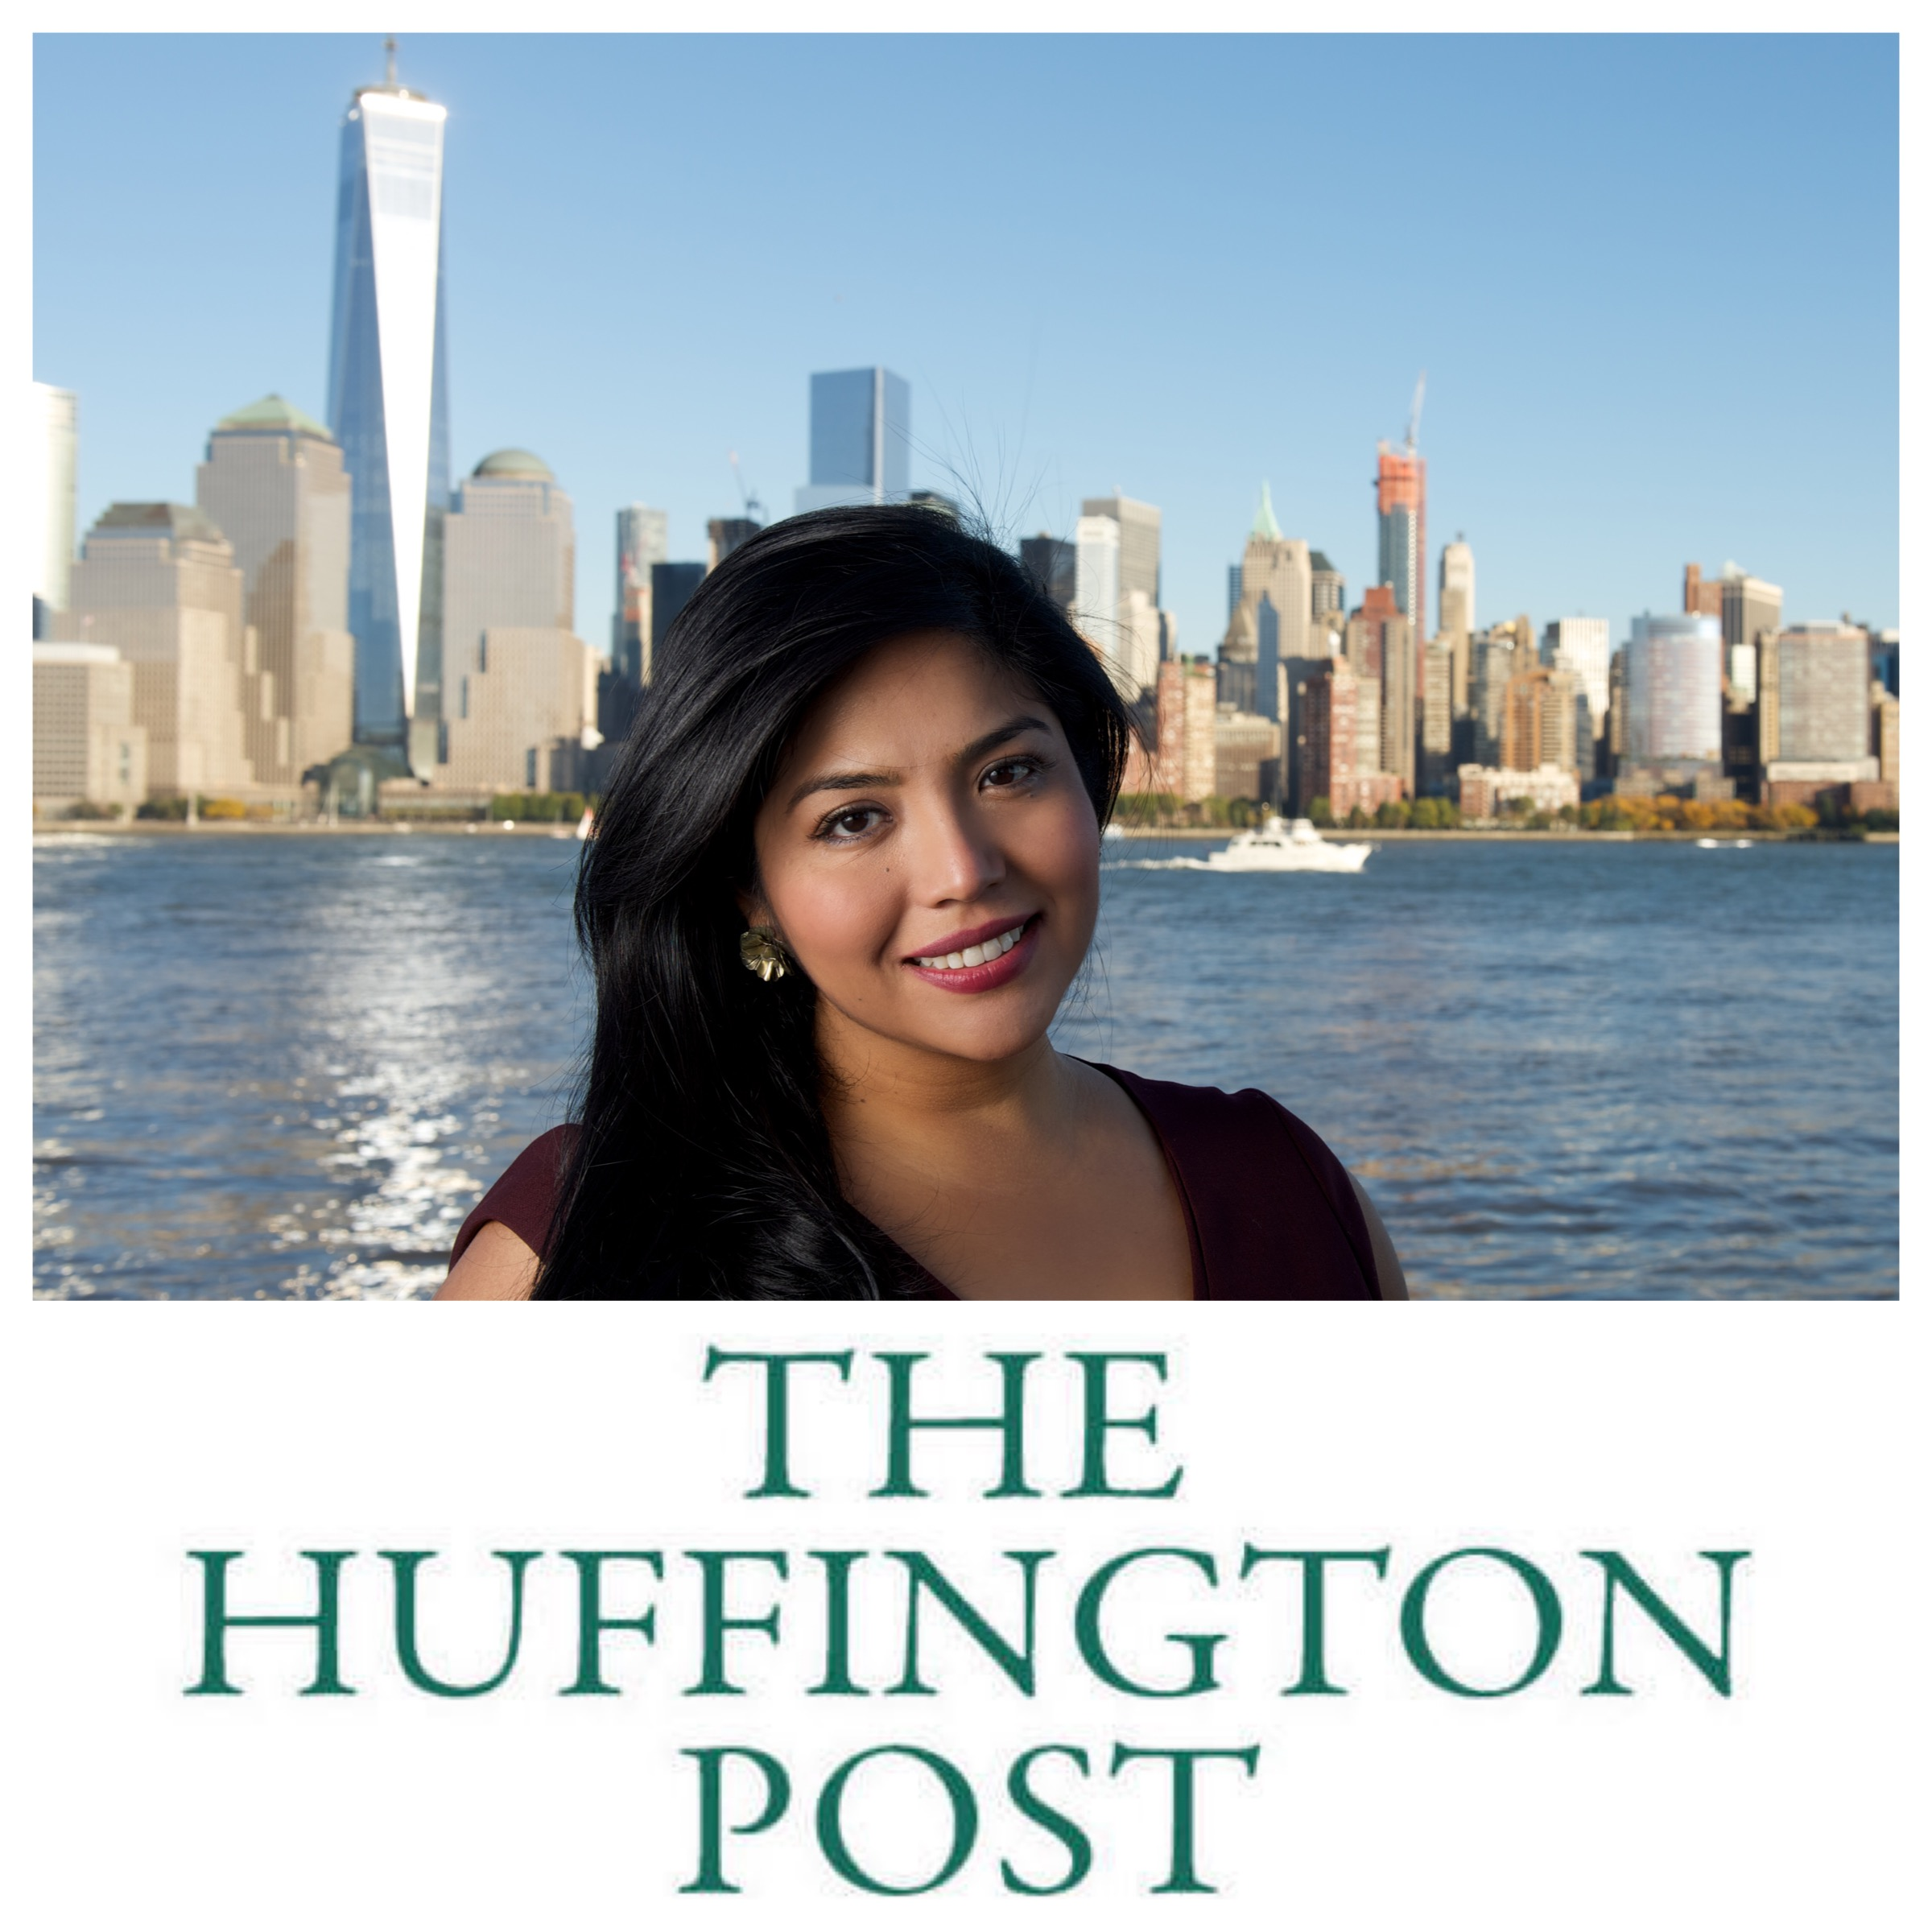 Social commentary on Huffington Post